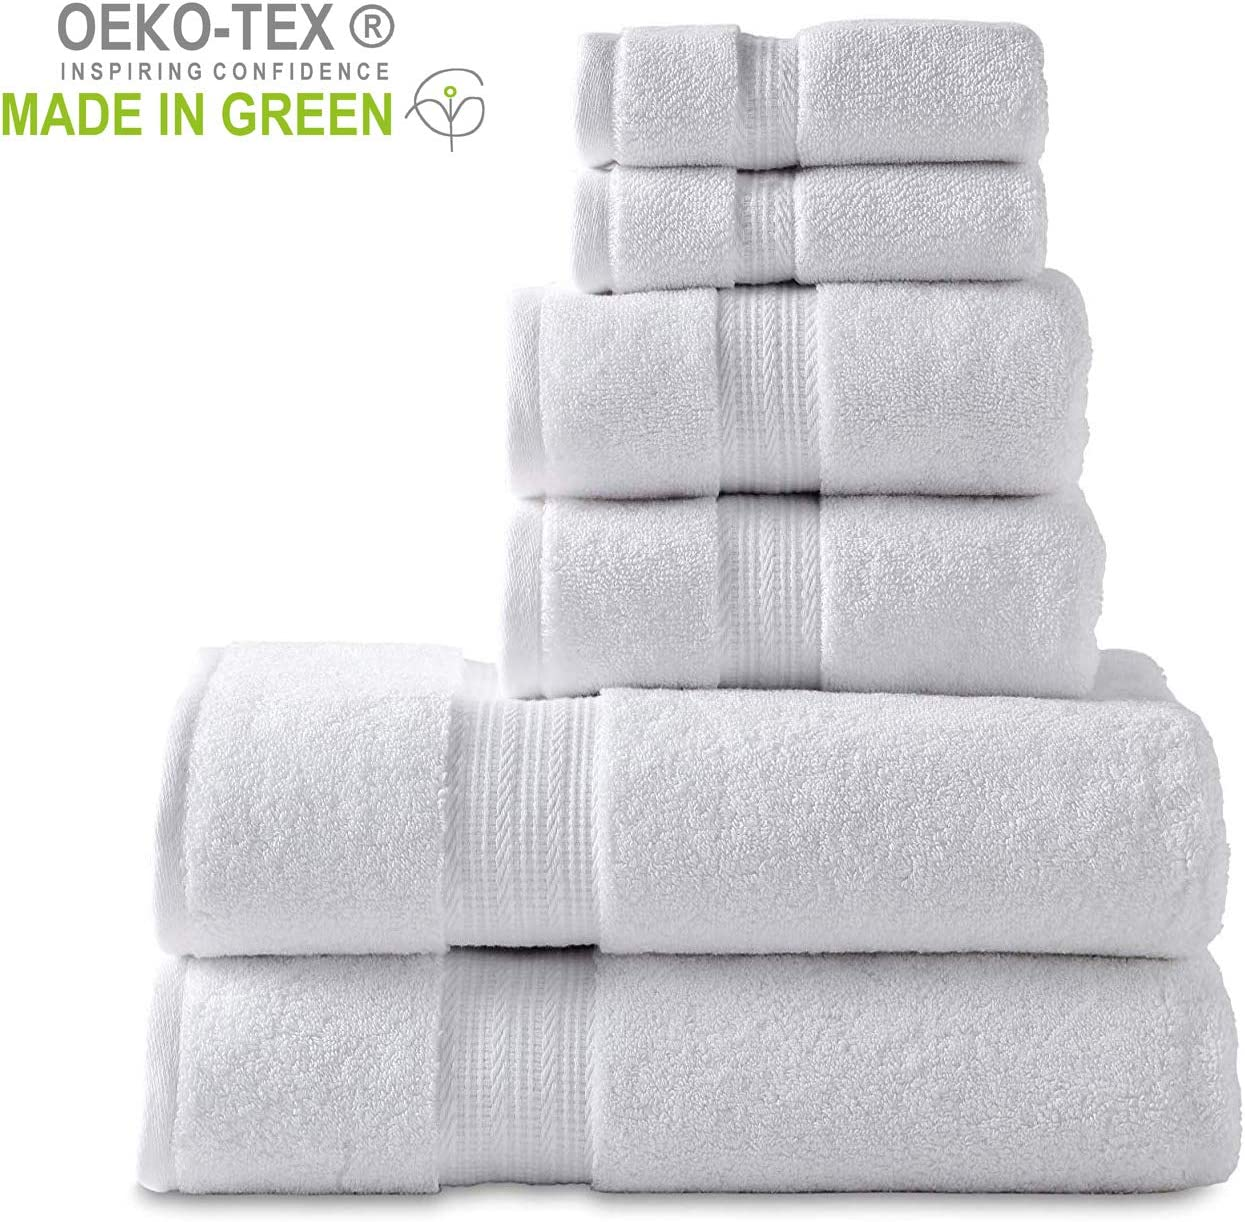 "804 GSM 6 Piece Towels Set, 100% Cotton, Premium Hotel & Spa Quality, Highly Absorbent, 2 Bath Towels 27"" x 54"", 2 Hand Towel 16"" x 28"" and 2 Wash Cloth 12"" x 12"". White Color"